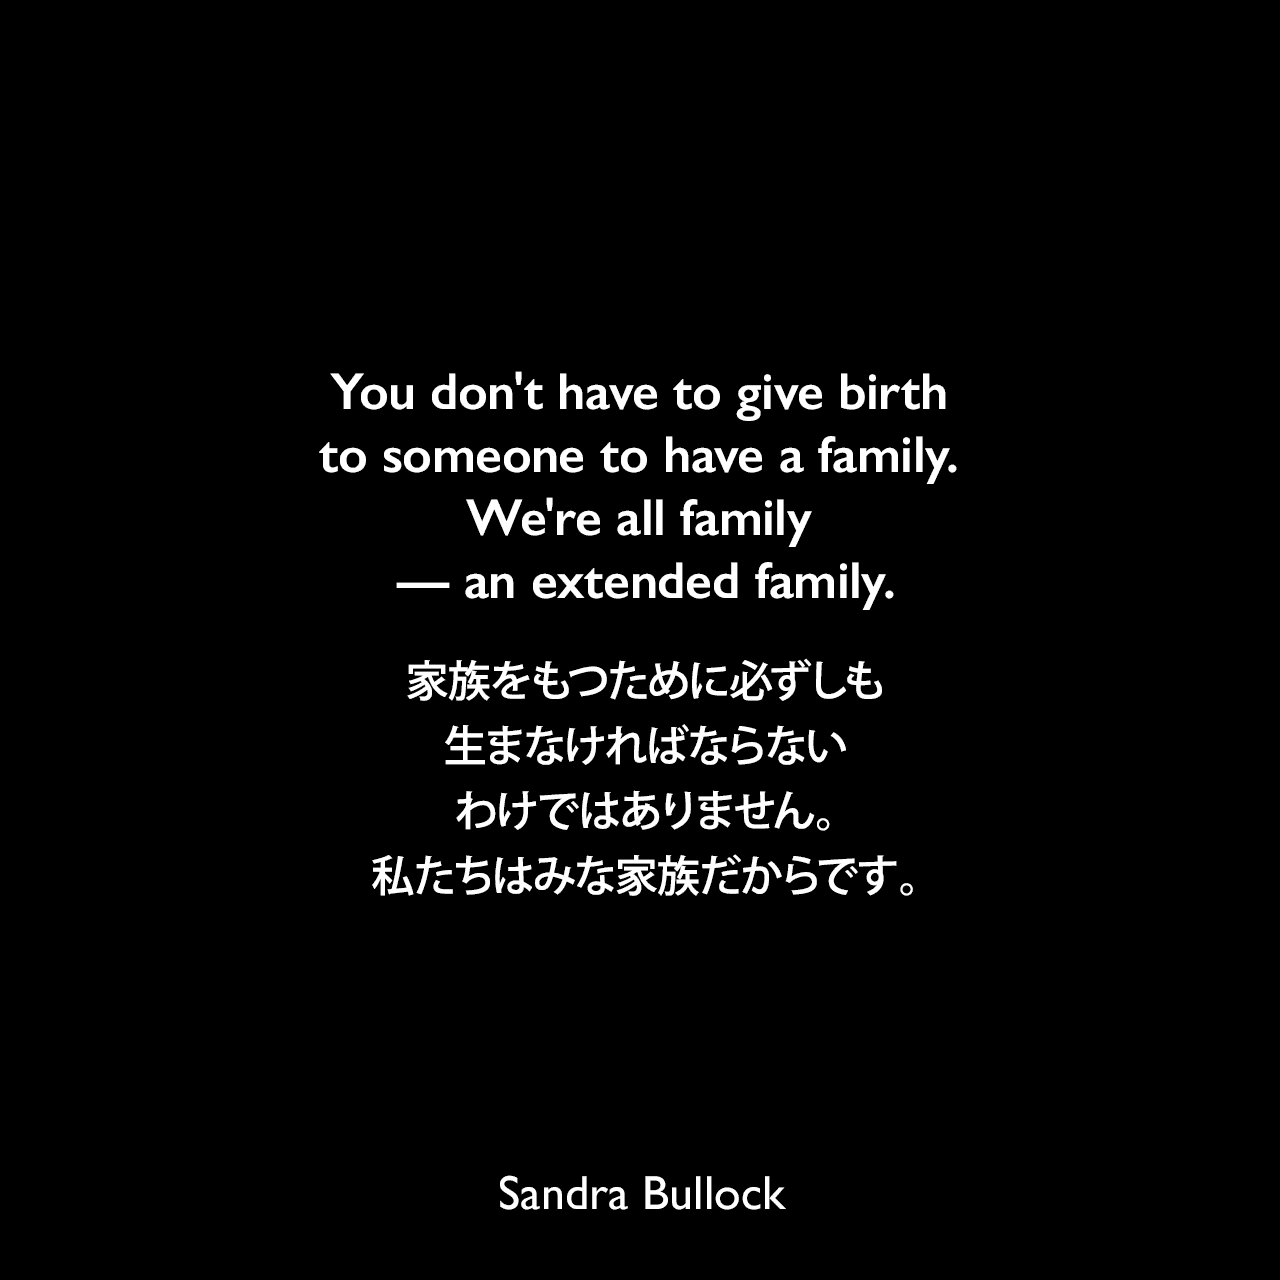 You don't have to give birth to someone to have a family. We're all family — an extended family.家族をもつために必ずしも生まなければならないわけではありません。私たちはみな家族だからです。Sandra Bullock